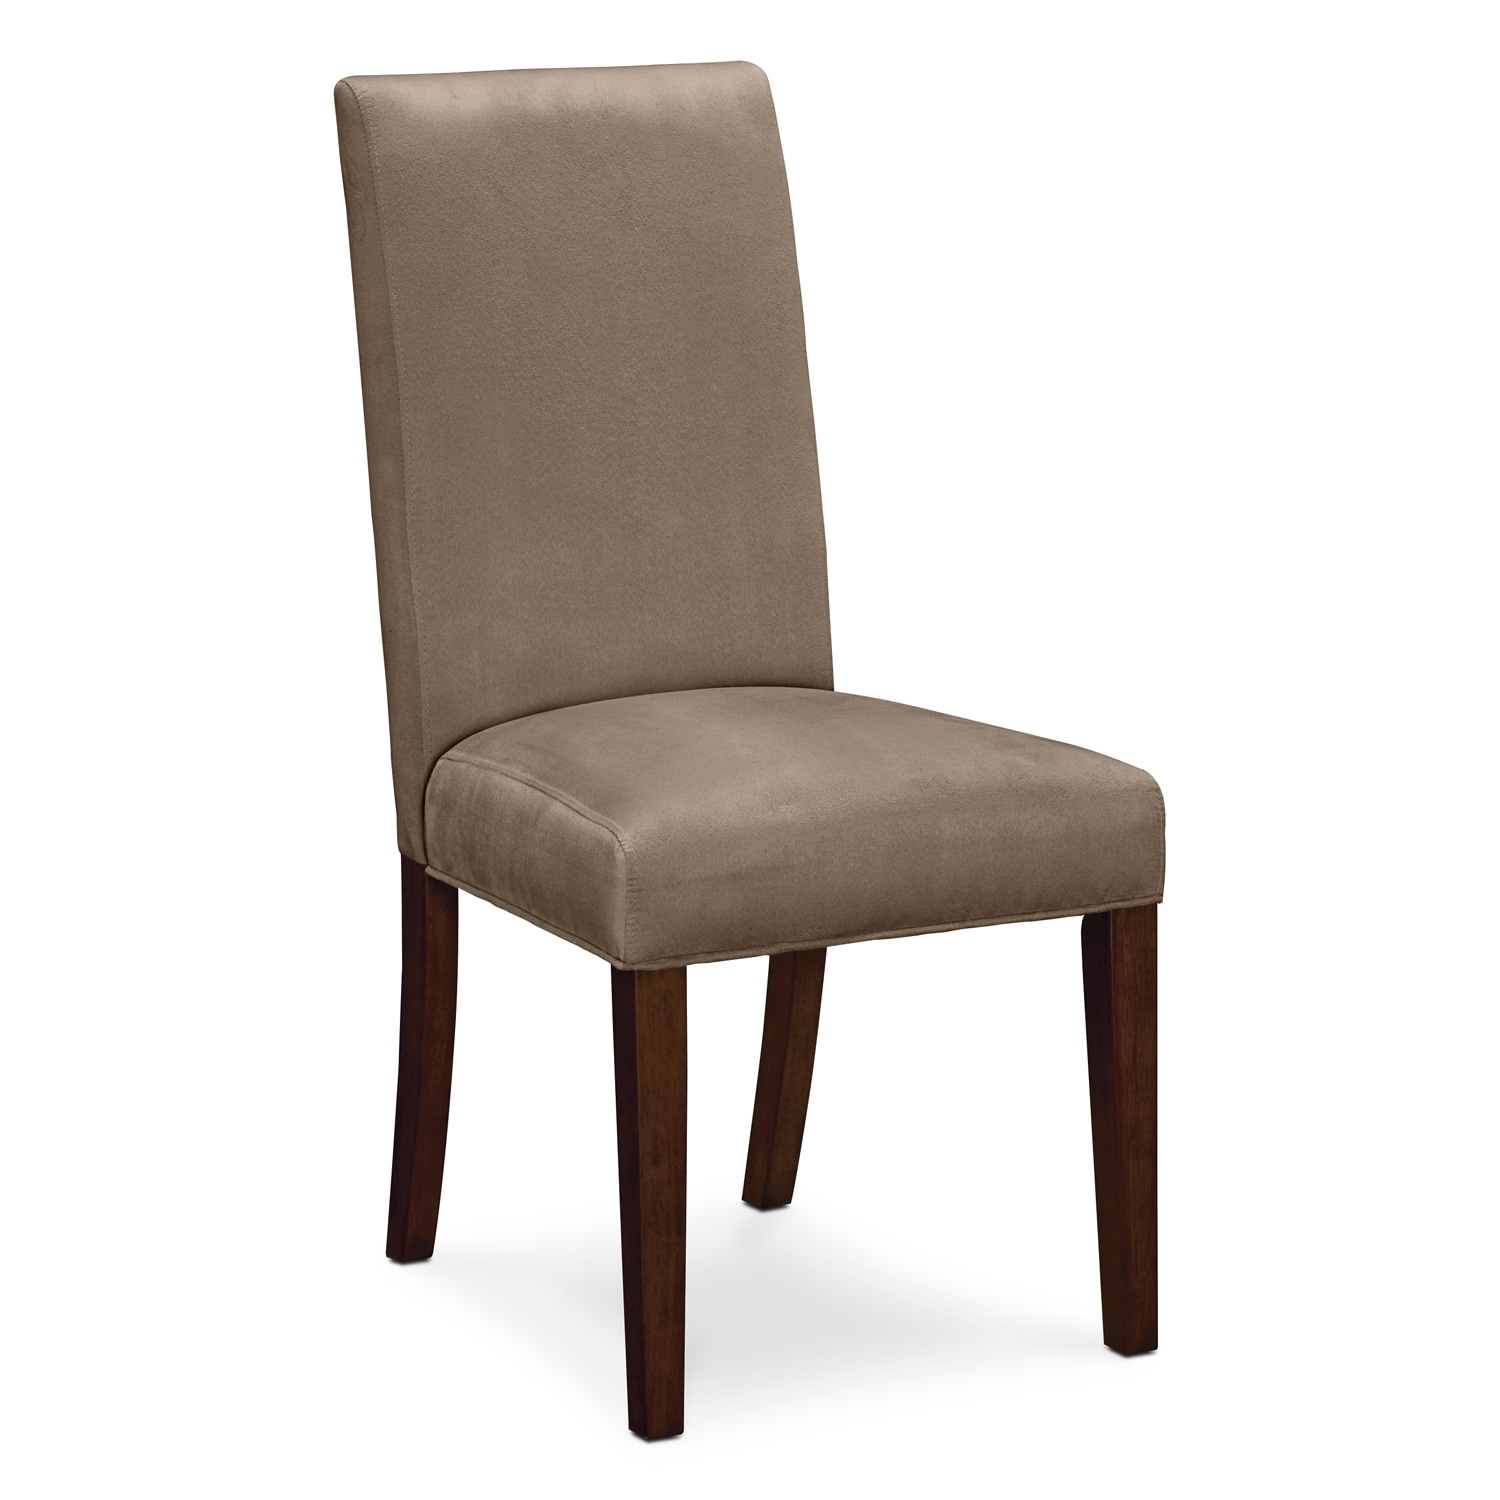 Alcove Beige Dining Room Chair Value City Furniture : 276226 from valuecity.com size 1500 x 1500 jpeg 378kB